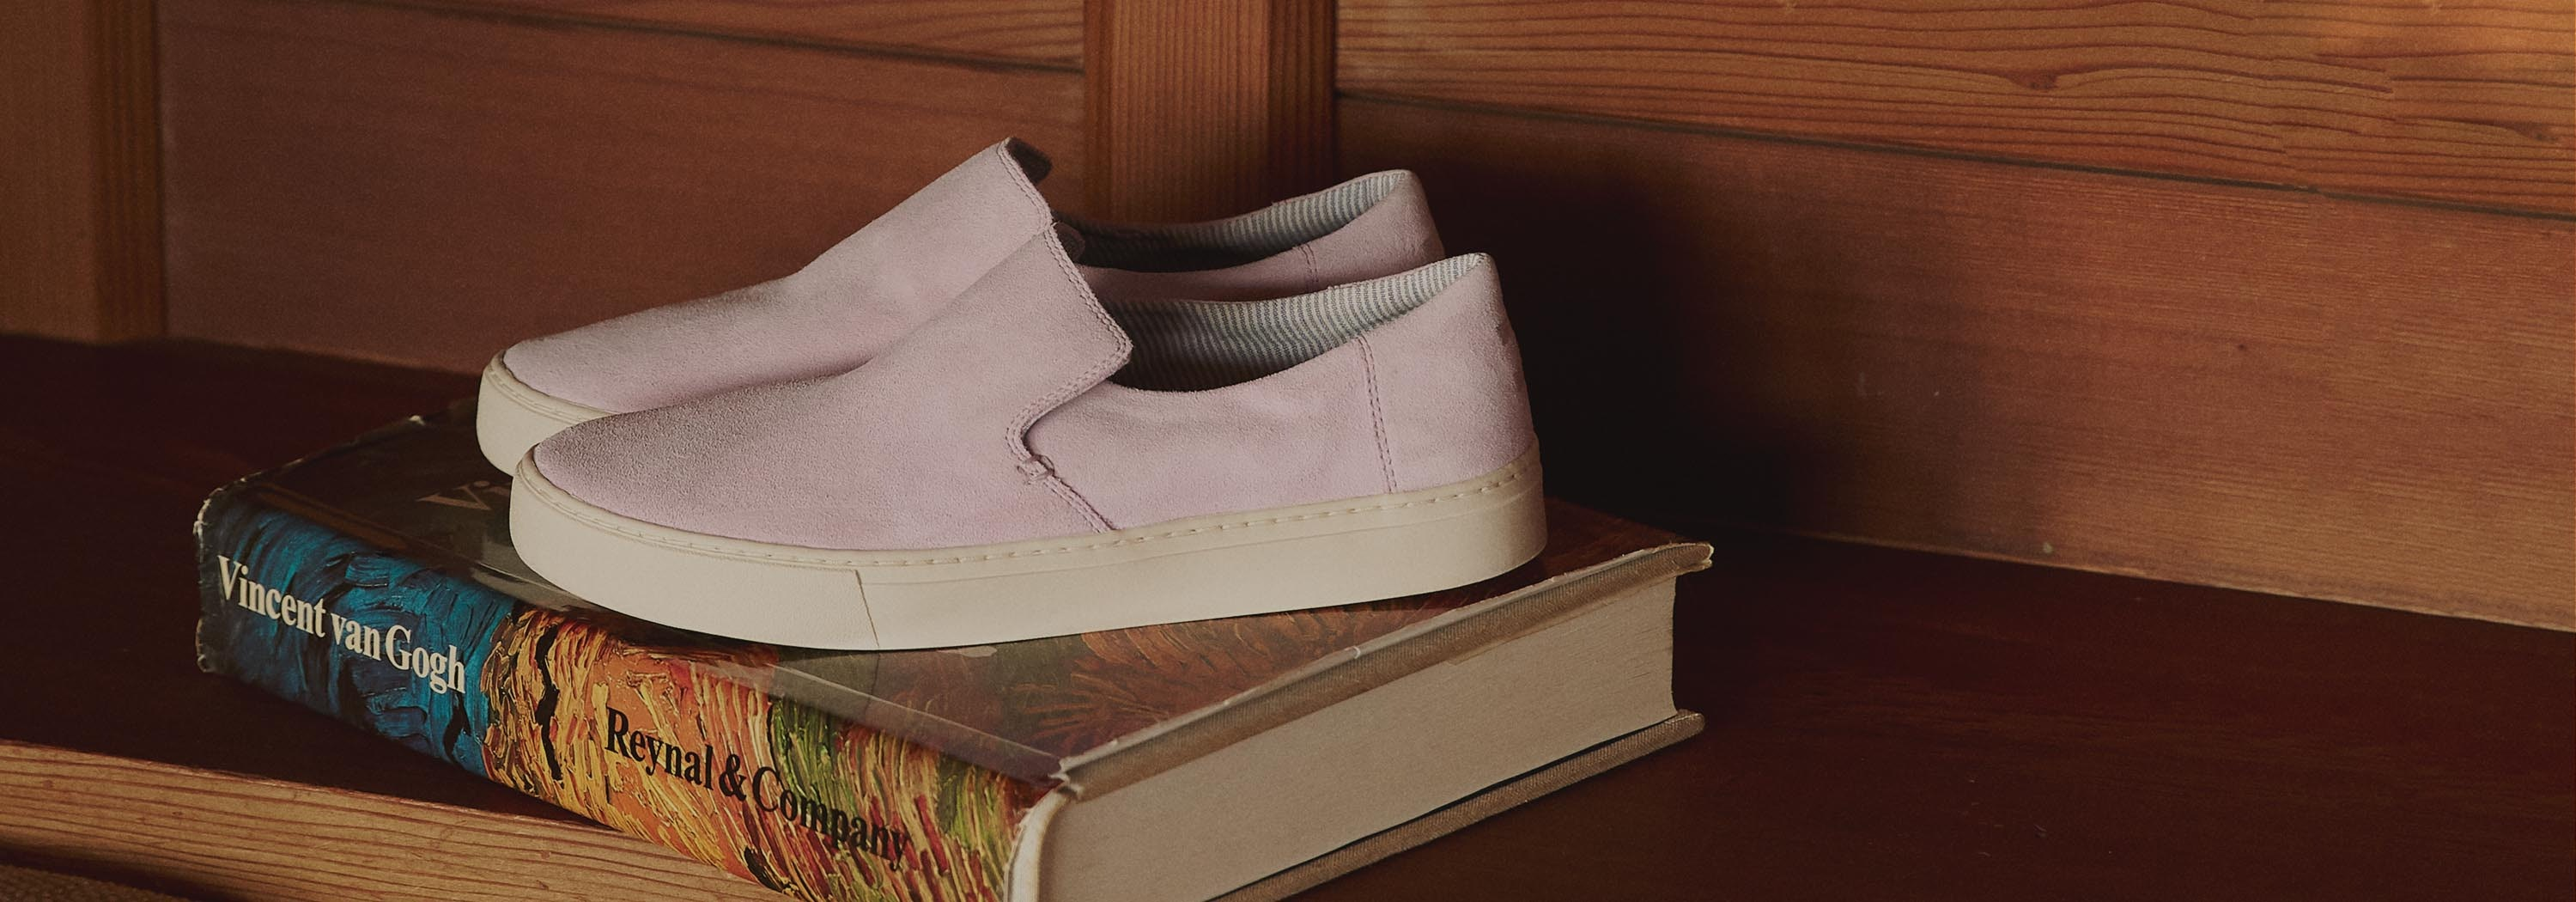 Take a walk in our brand new shoes, made in collaboration with TOMS.